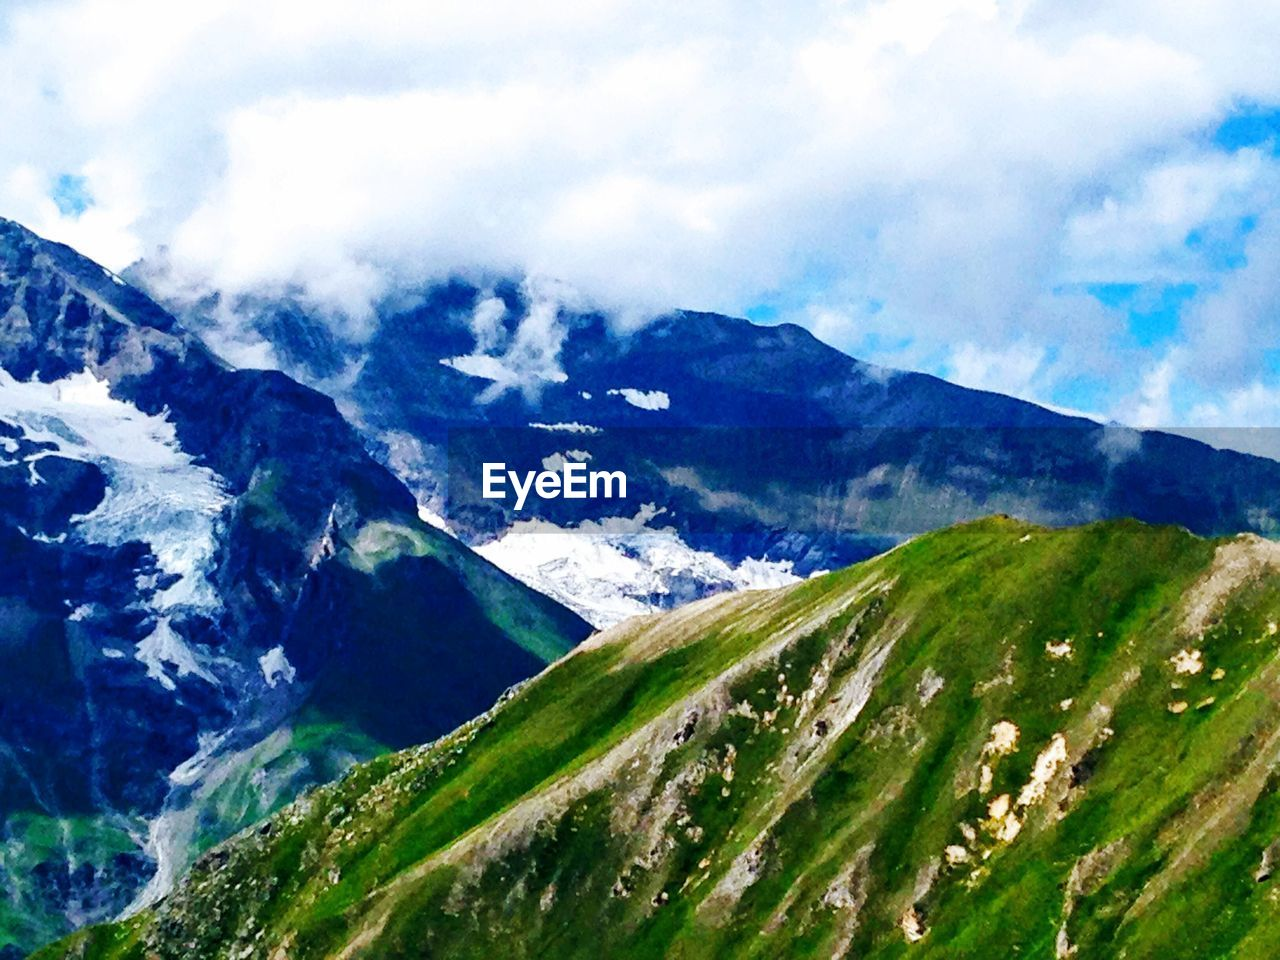 mountain, sky, cloud - sky, beauty in nature, scenics - nature, environment, tranquil scene, landscape, tranquility, nature, no people, day, mountain range, non-urban scene, idyllic, green color, plant, outdoors, land, mountain peak, snowcapped mountain, range